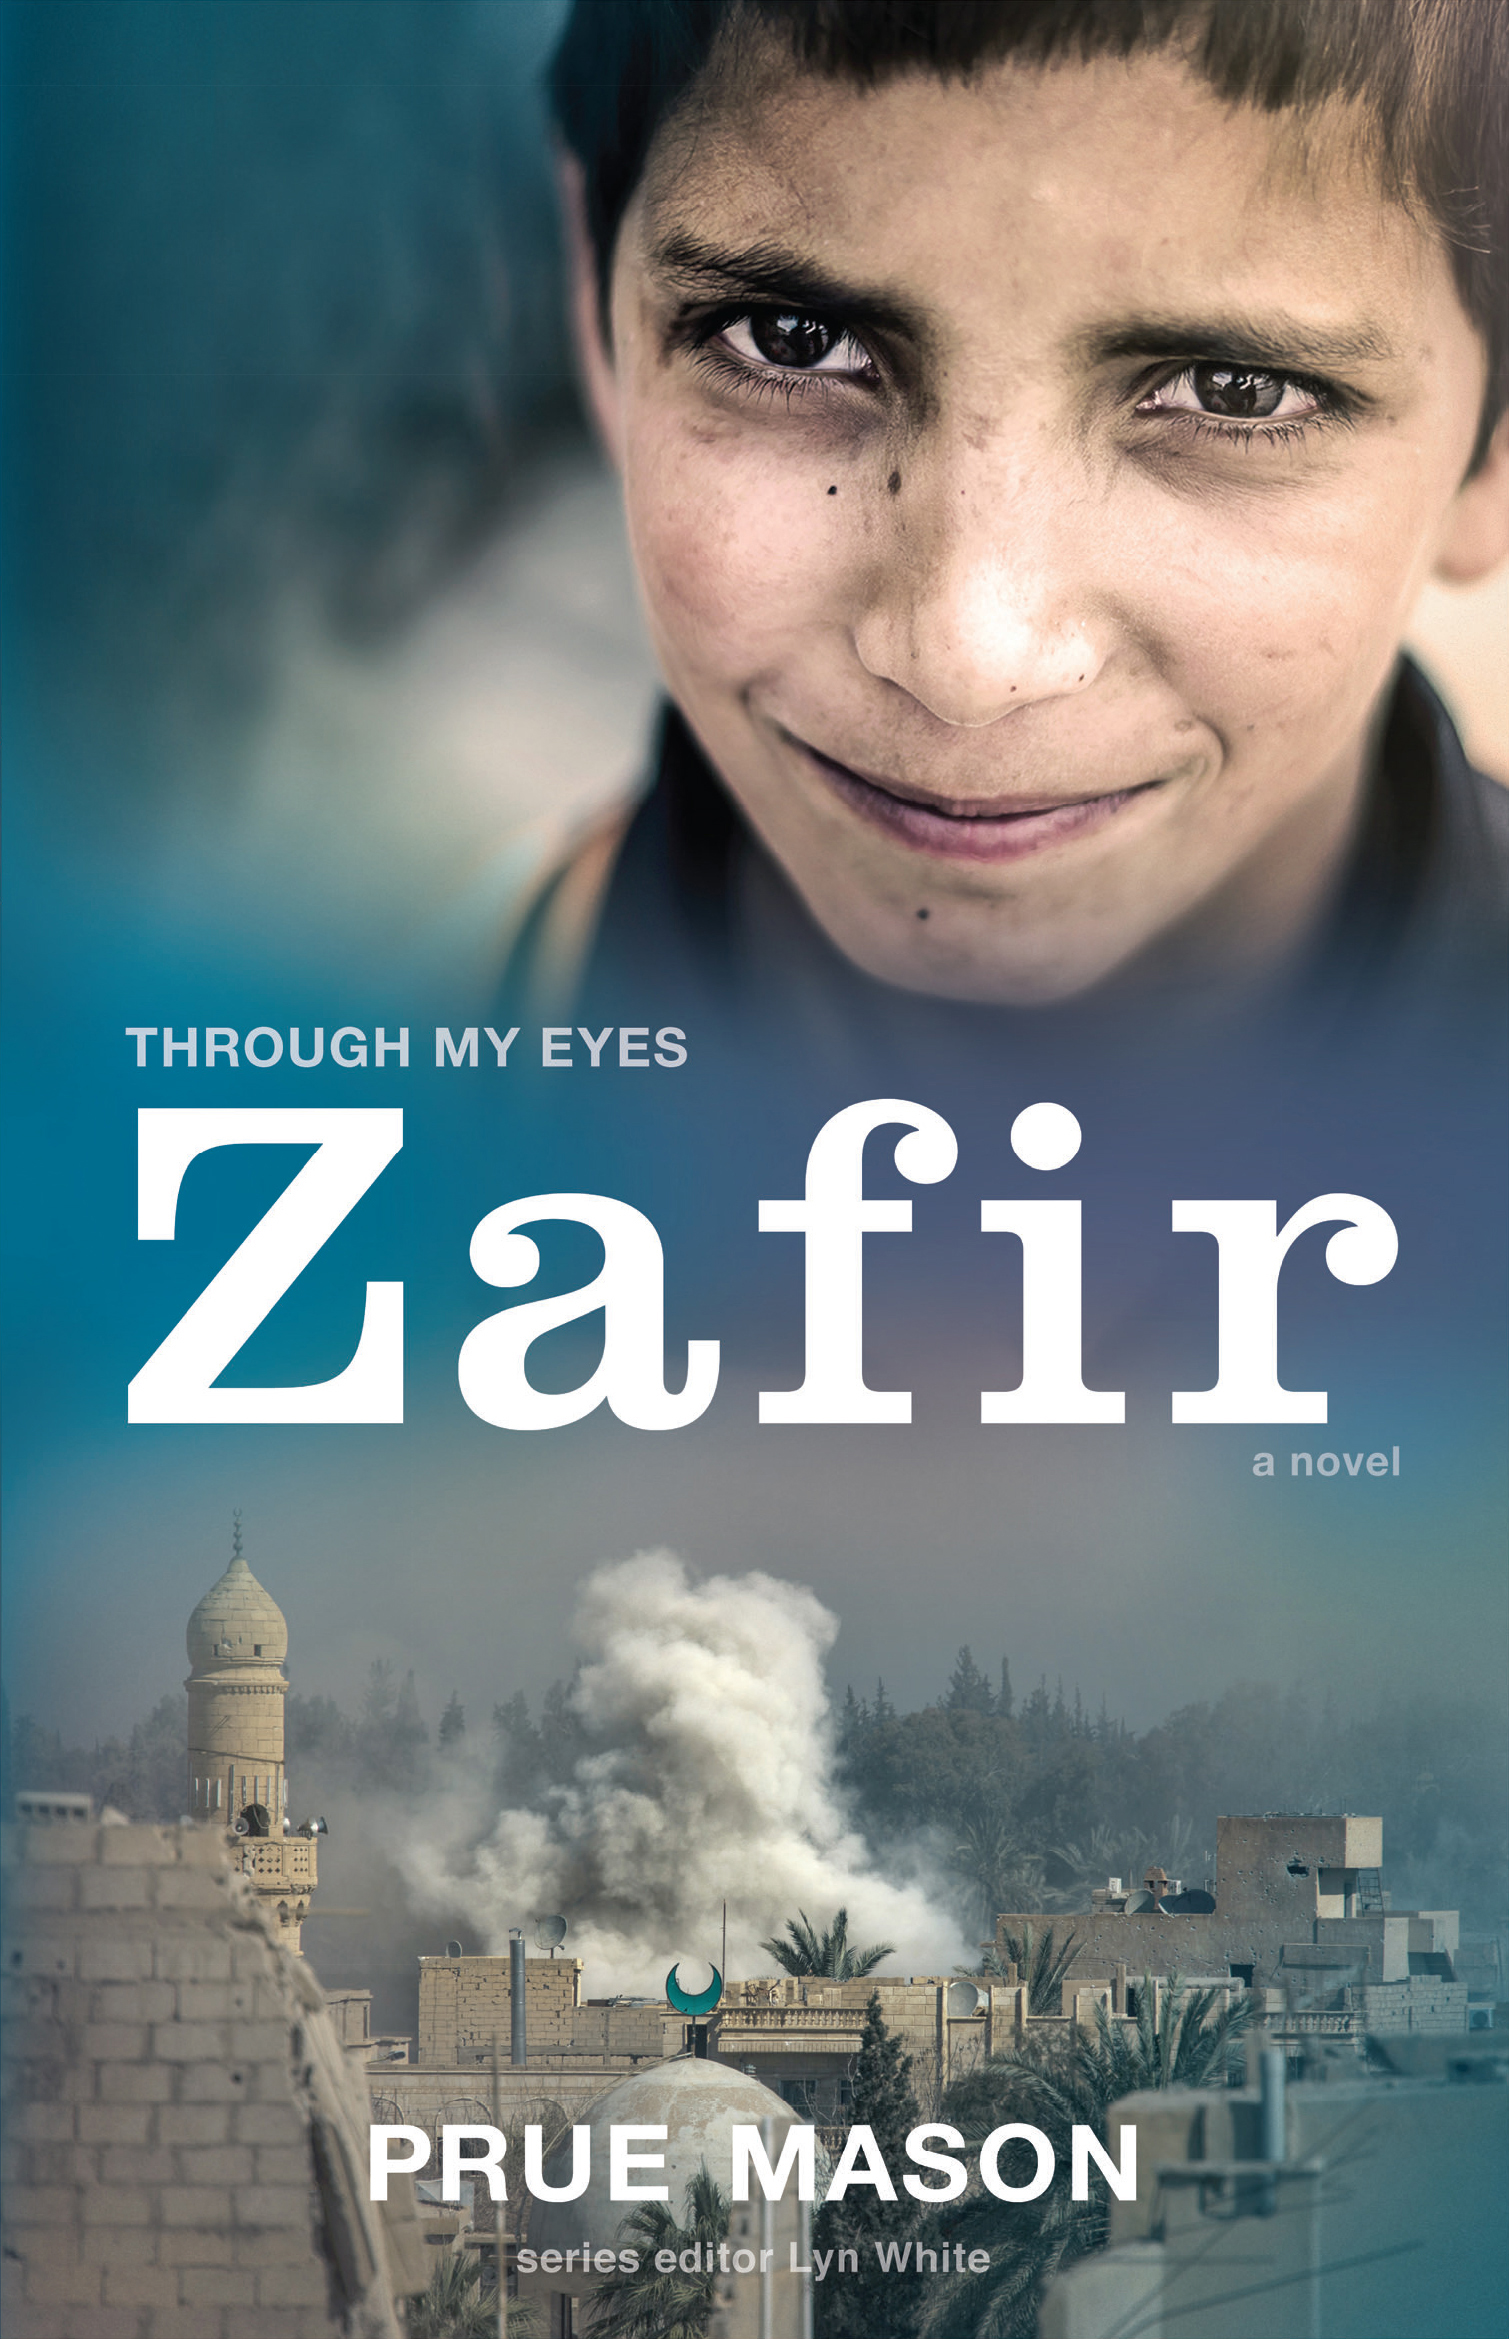 Zafir Through My Eyes Prue Mason Edited By Lyn White Camel Download Cover